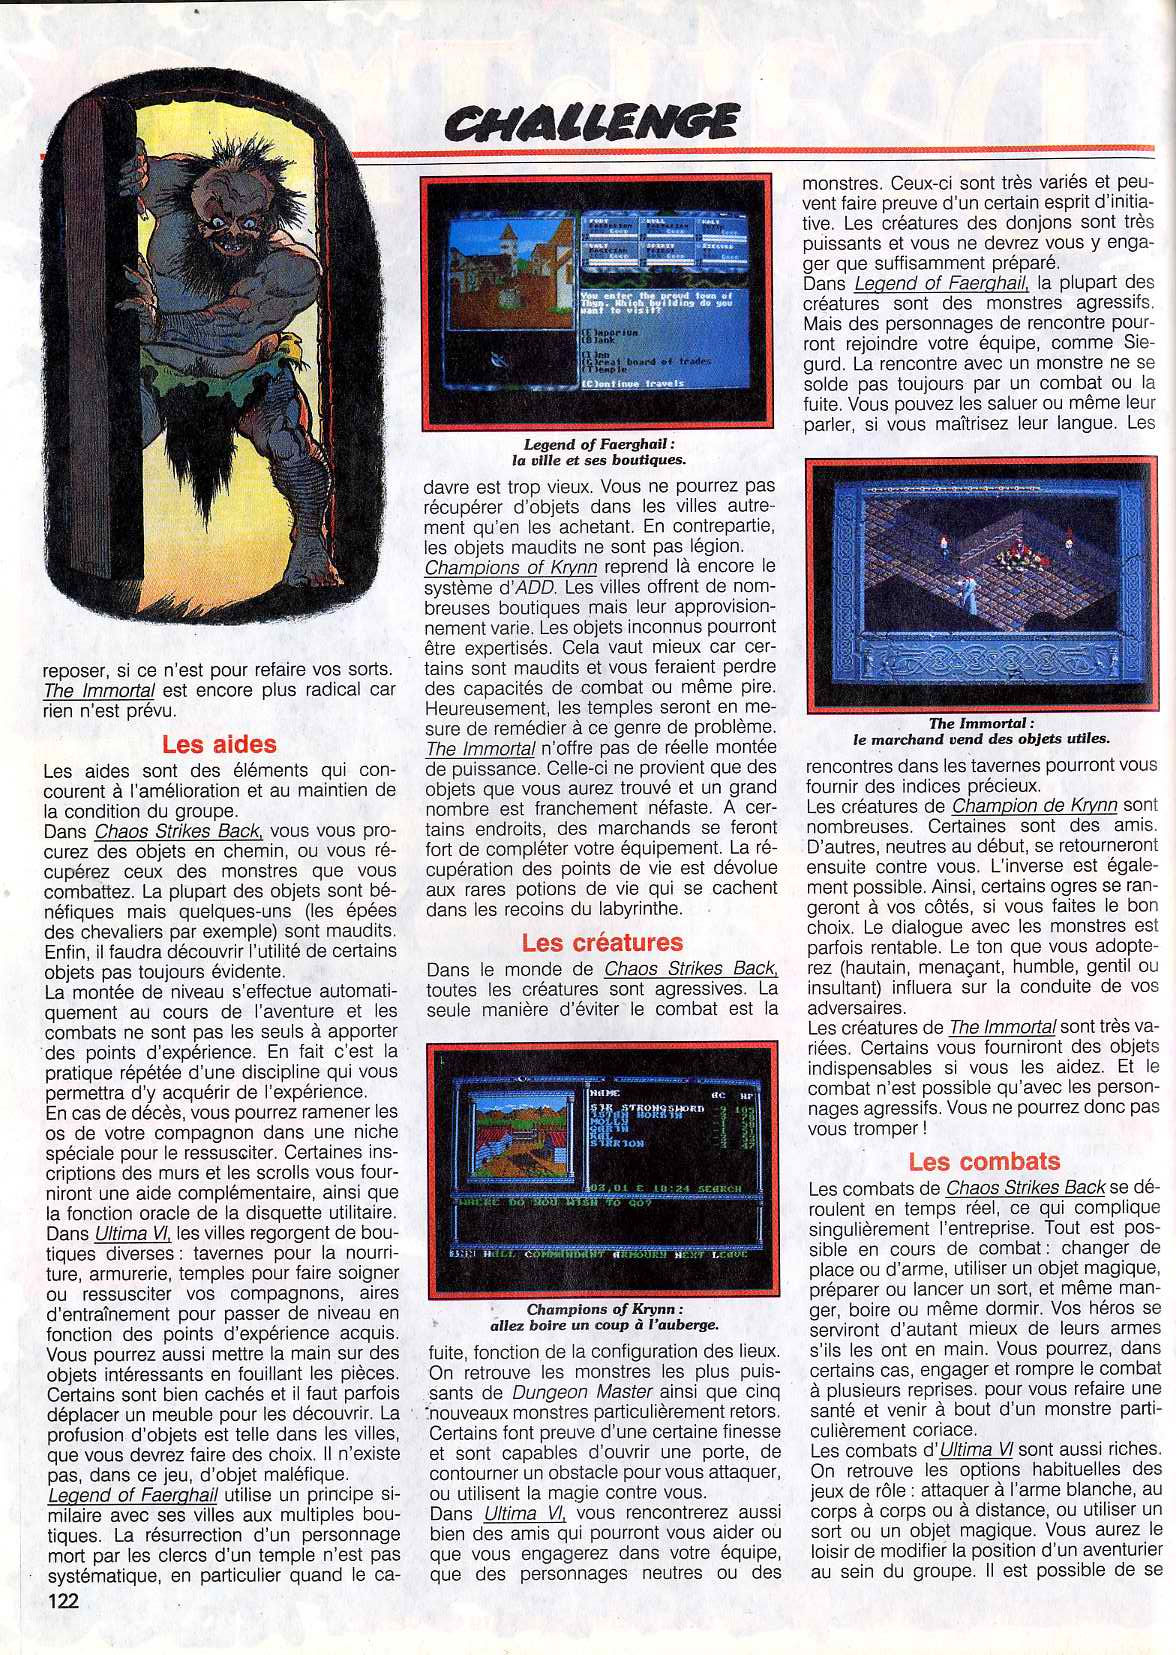 Chaos Strikes Back Article published in French magazine 'Tilt', Issue #83 November 1990, Page 122